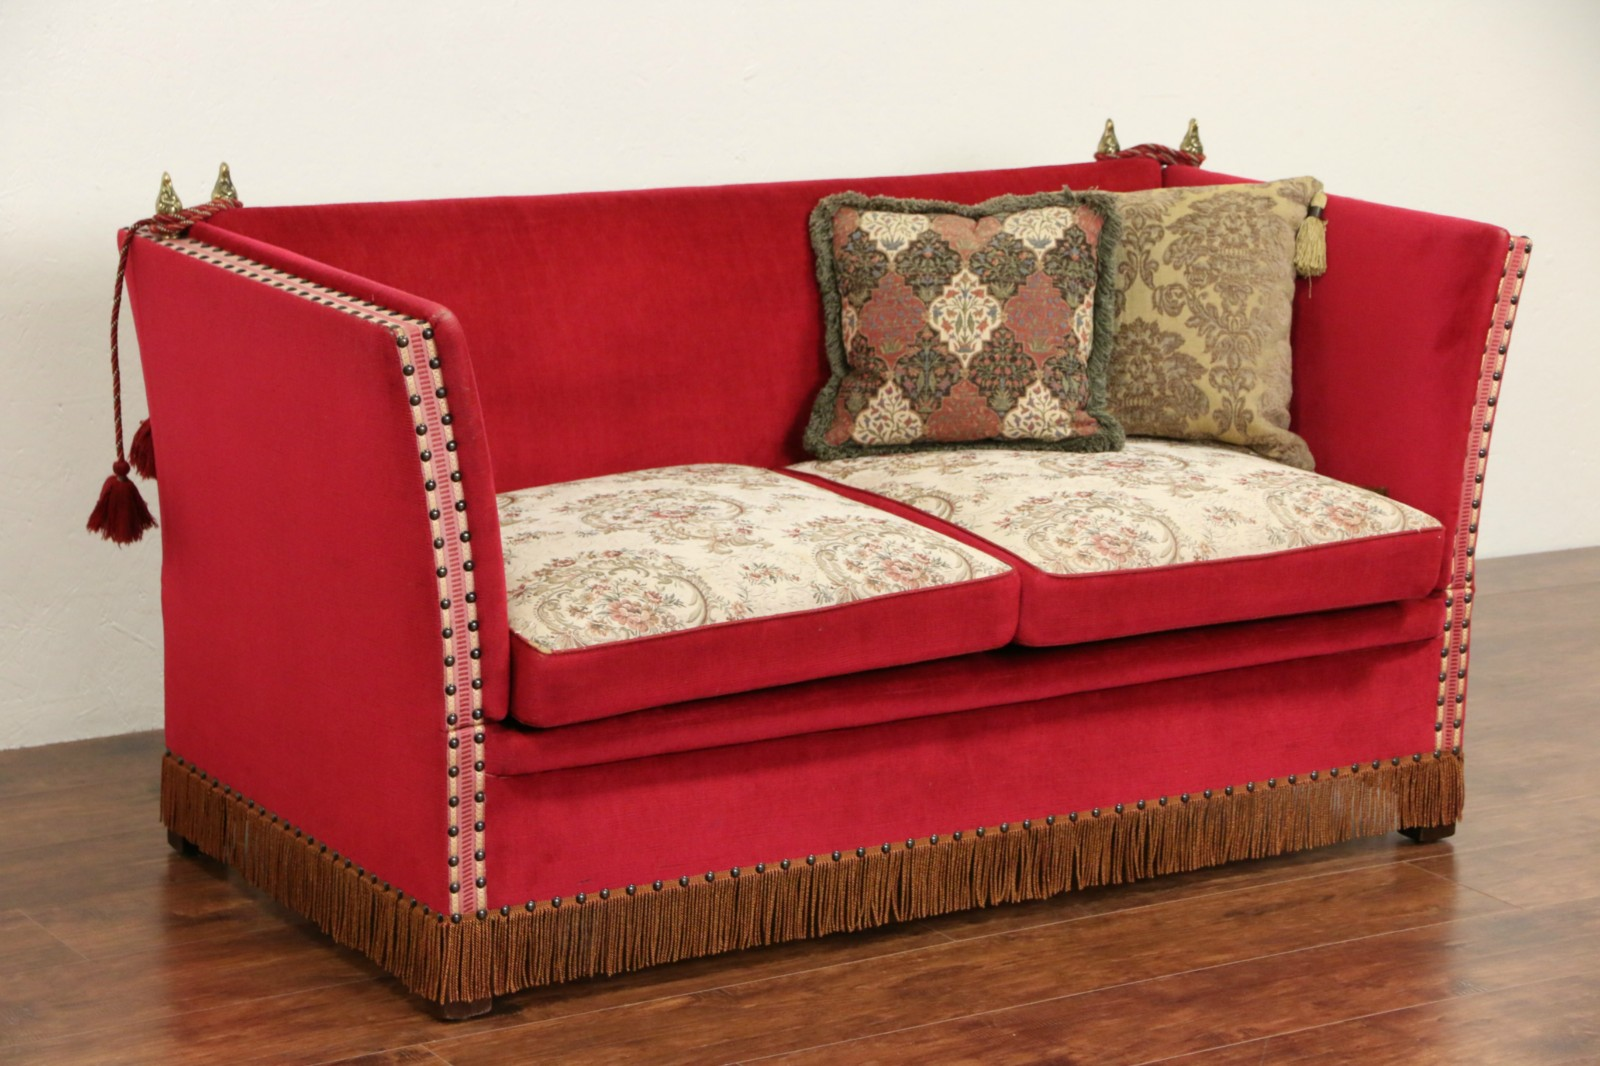 Awesome Spanish Adjustable Dropside 1930 Vintage Sofa Or Settee With Fringe